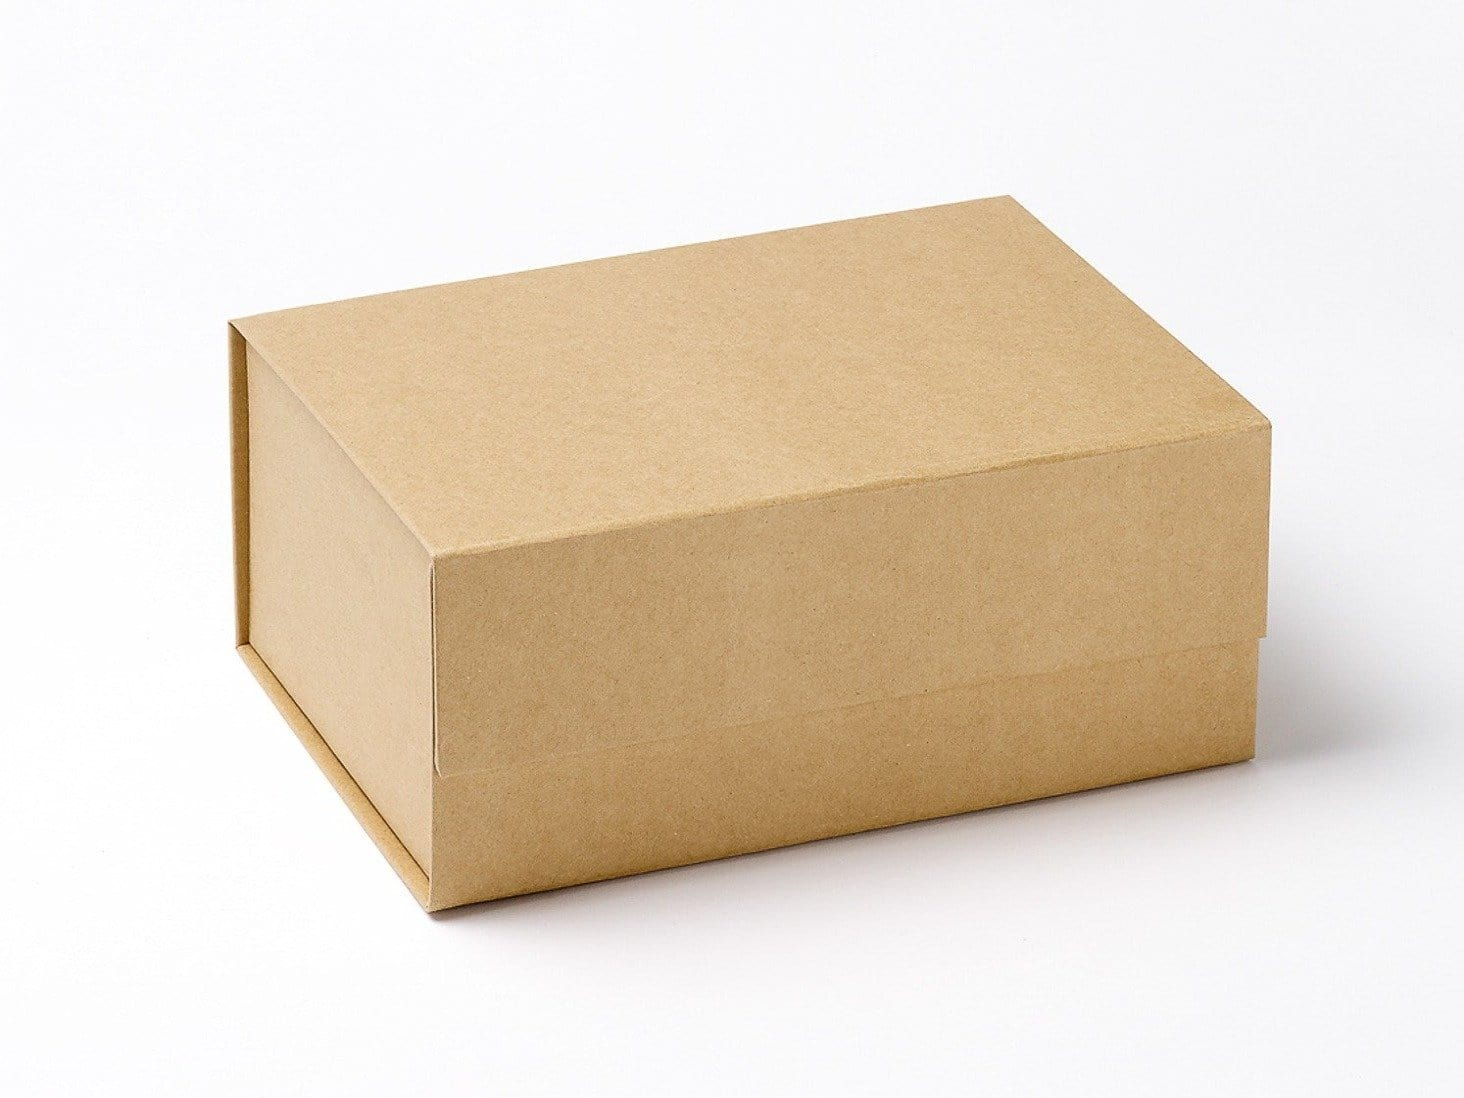 Foldabox UK A5 Deep Natural Kraft Folding Gift Box with Magnetic Snap Shut Closure